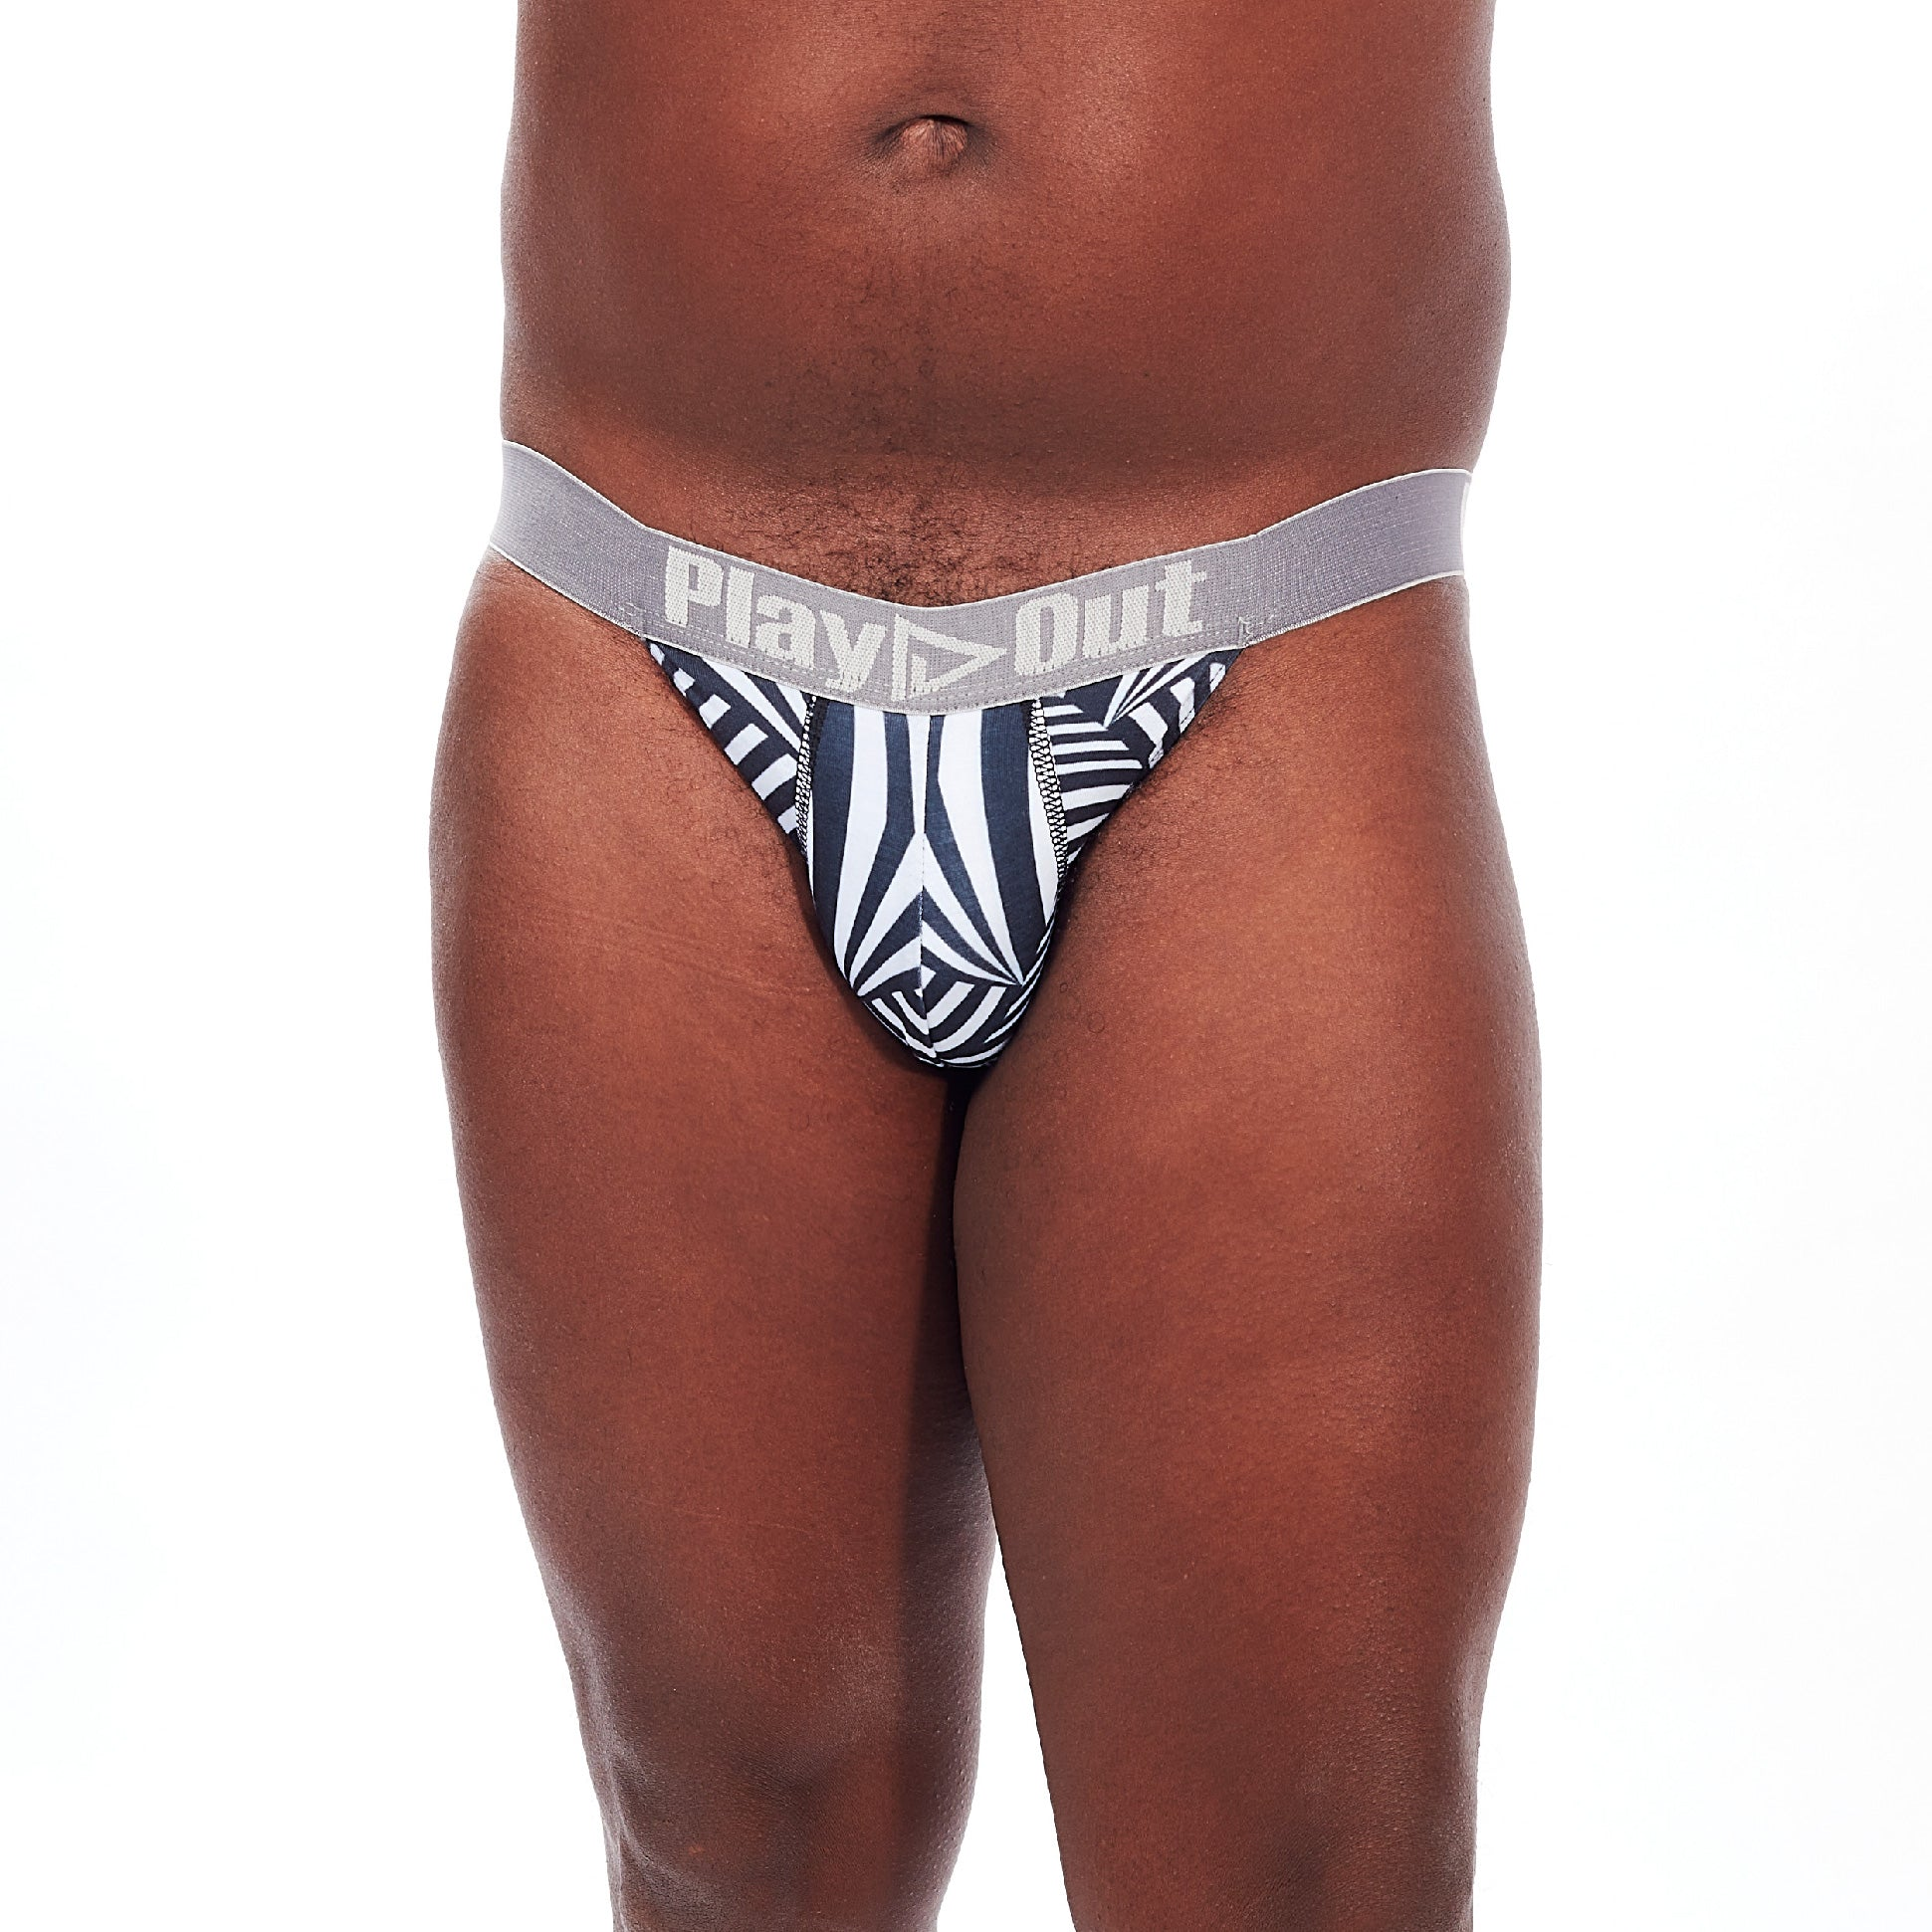 Play Out Apparel Pouch Thong in Mazie Black and white print front